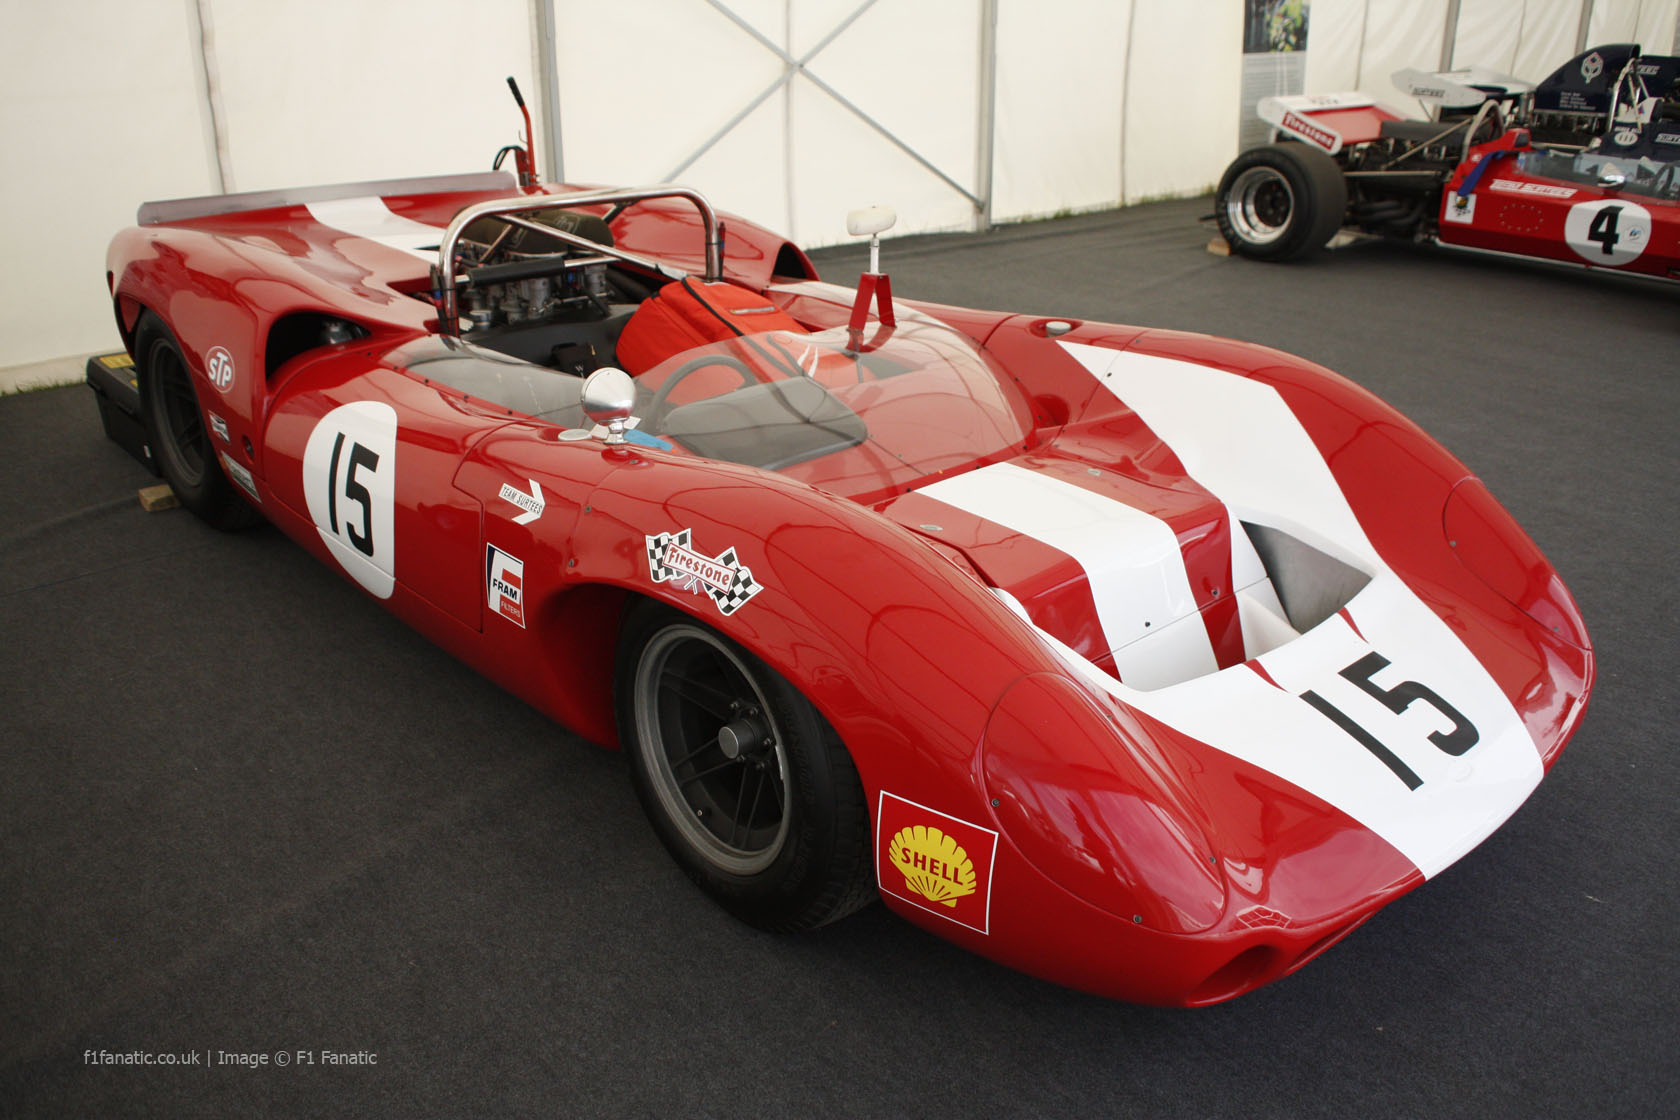 Lola-Chevrolet T80 Mk2 Spyder Can-Am, Goodwood Festival of Speed, 2014